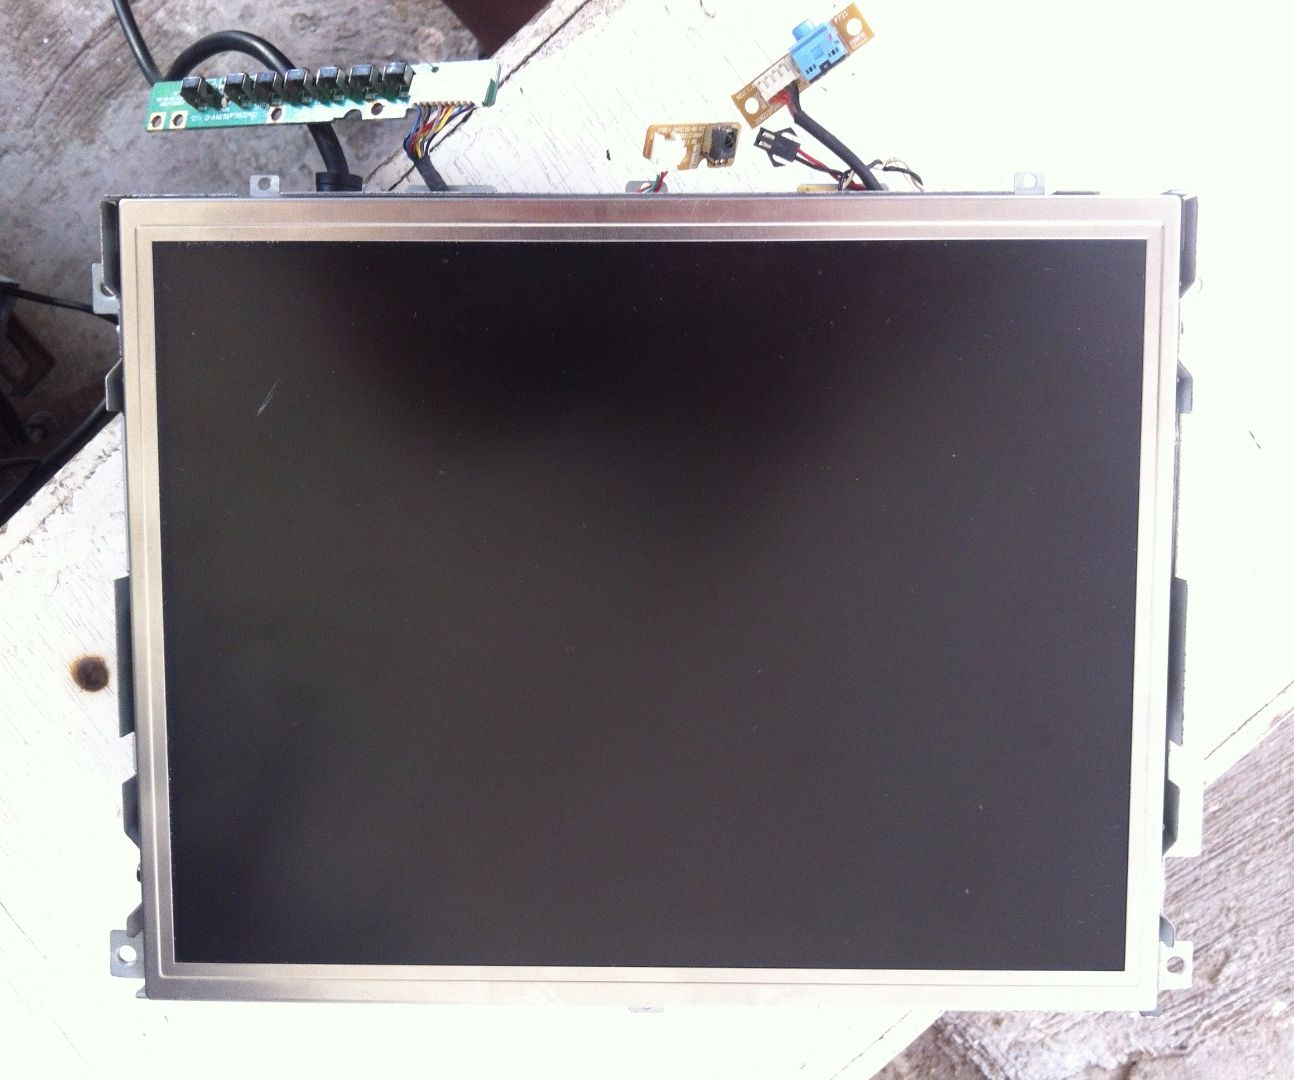 medium resolution of lcd tv backlight repair from ccfl to led